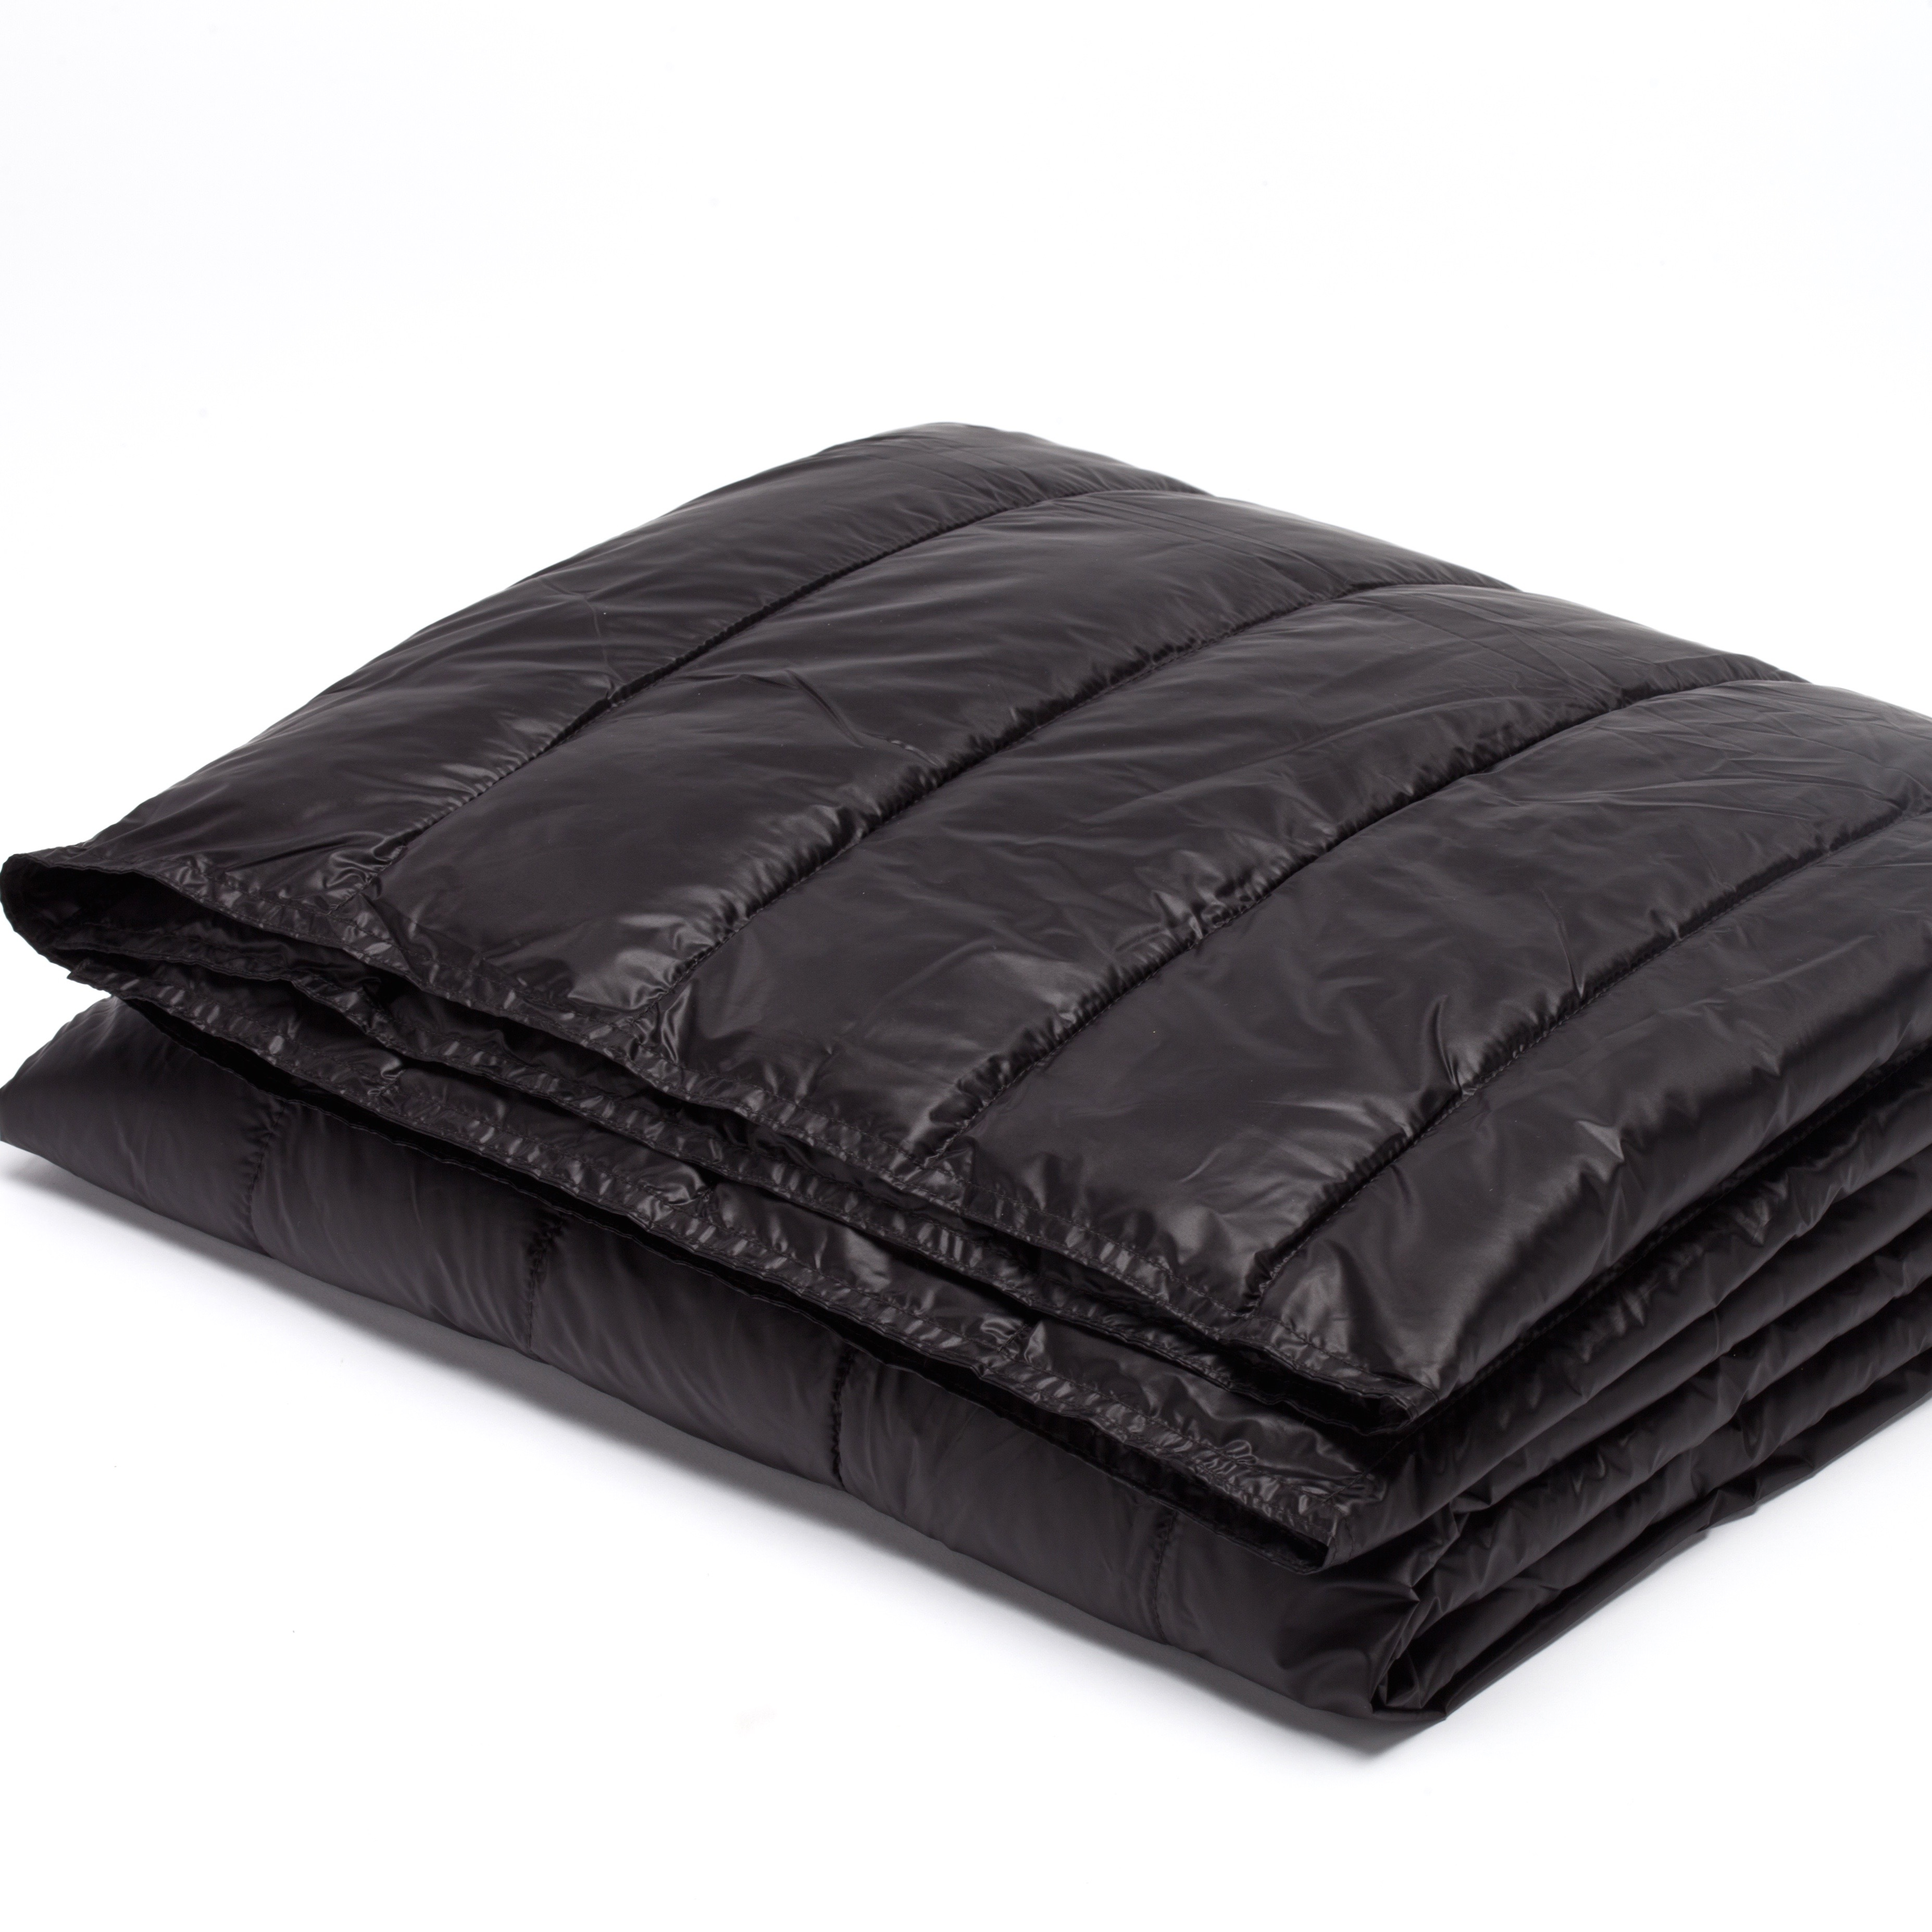 """PUFF 50"""" x 70"""" Packable Down Alternative Indoor/Outdoor Water Resistant Throw with Extra Strong Nylon Cover"""